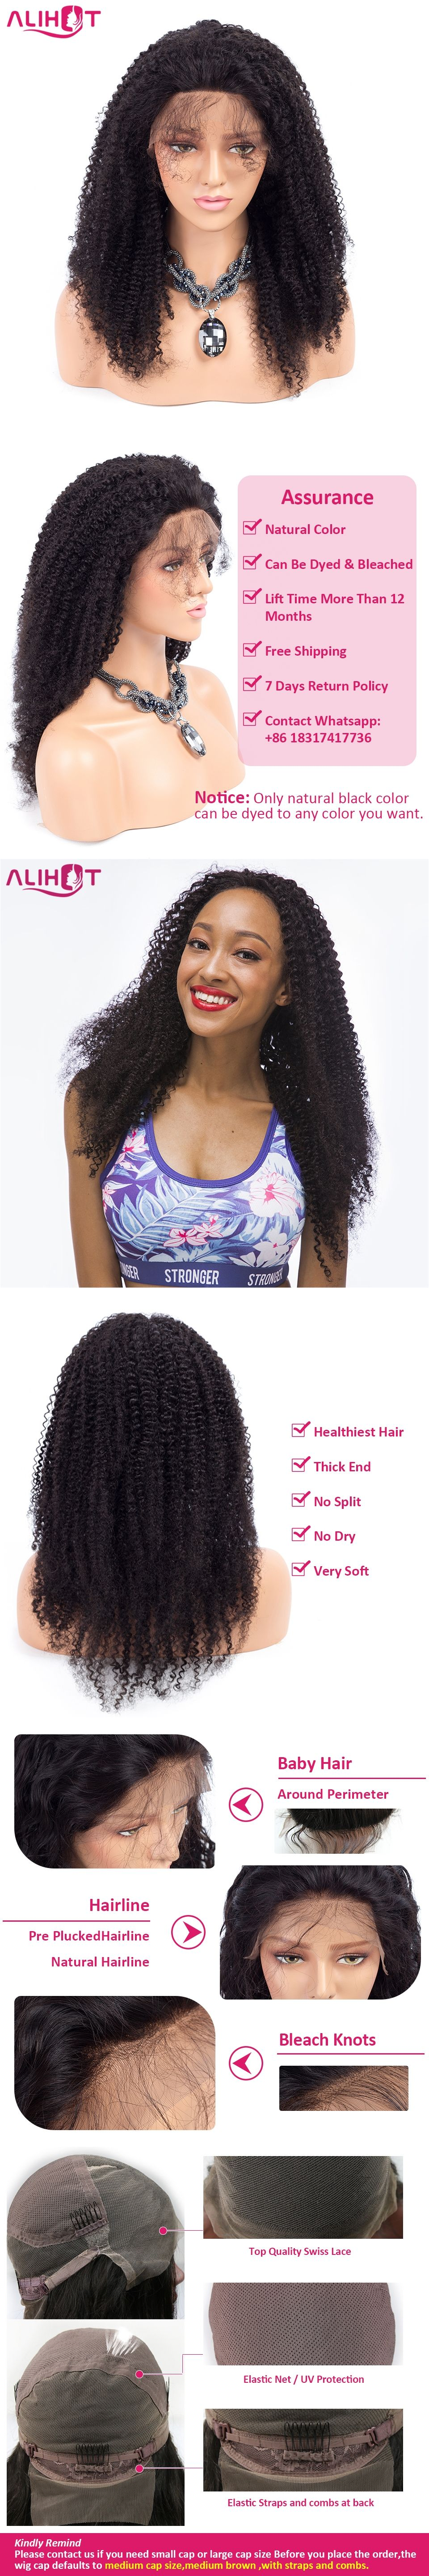 ALI HOT Brazilian Kinky Curly Remy Hair Pre Plucked Full Lace Human